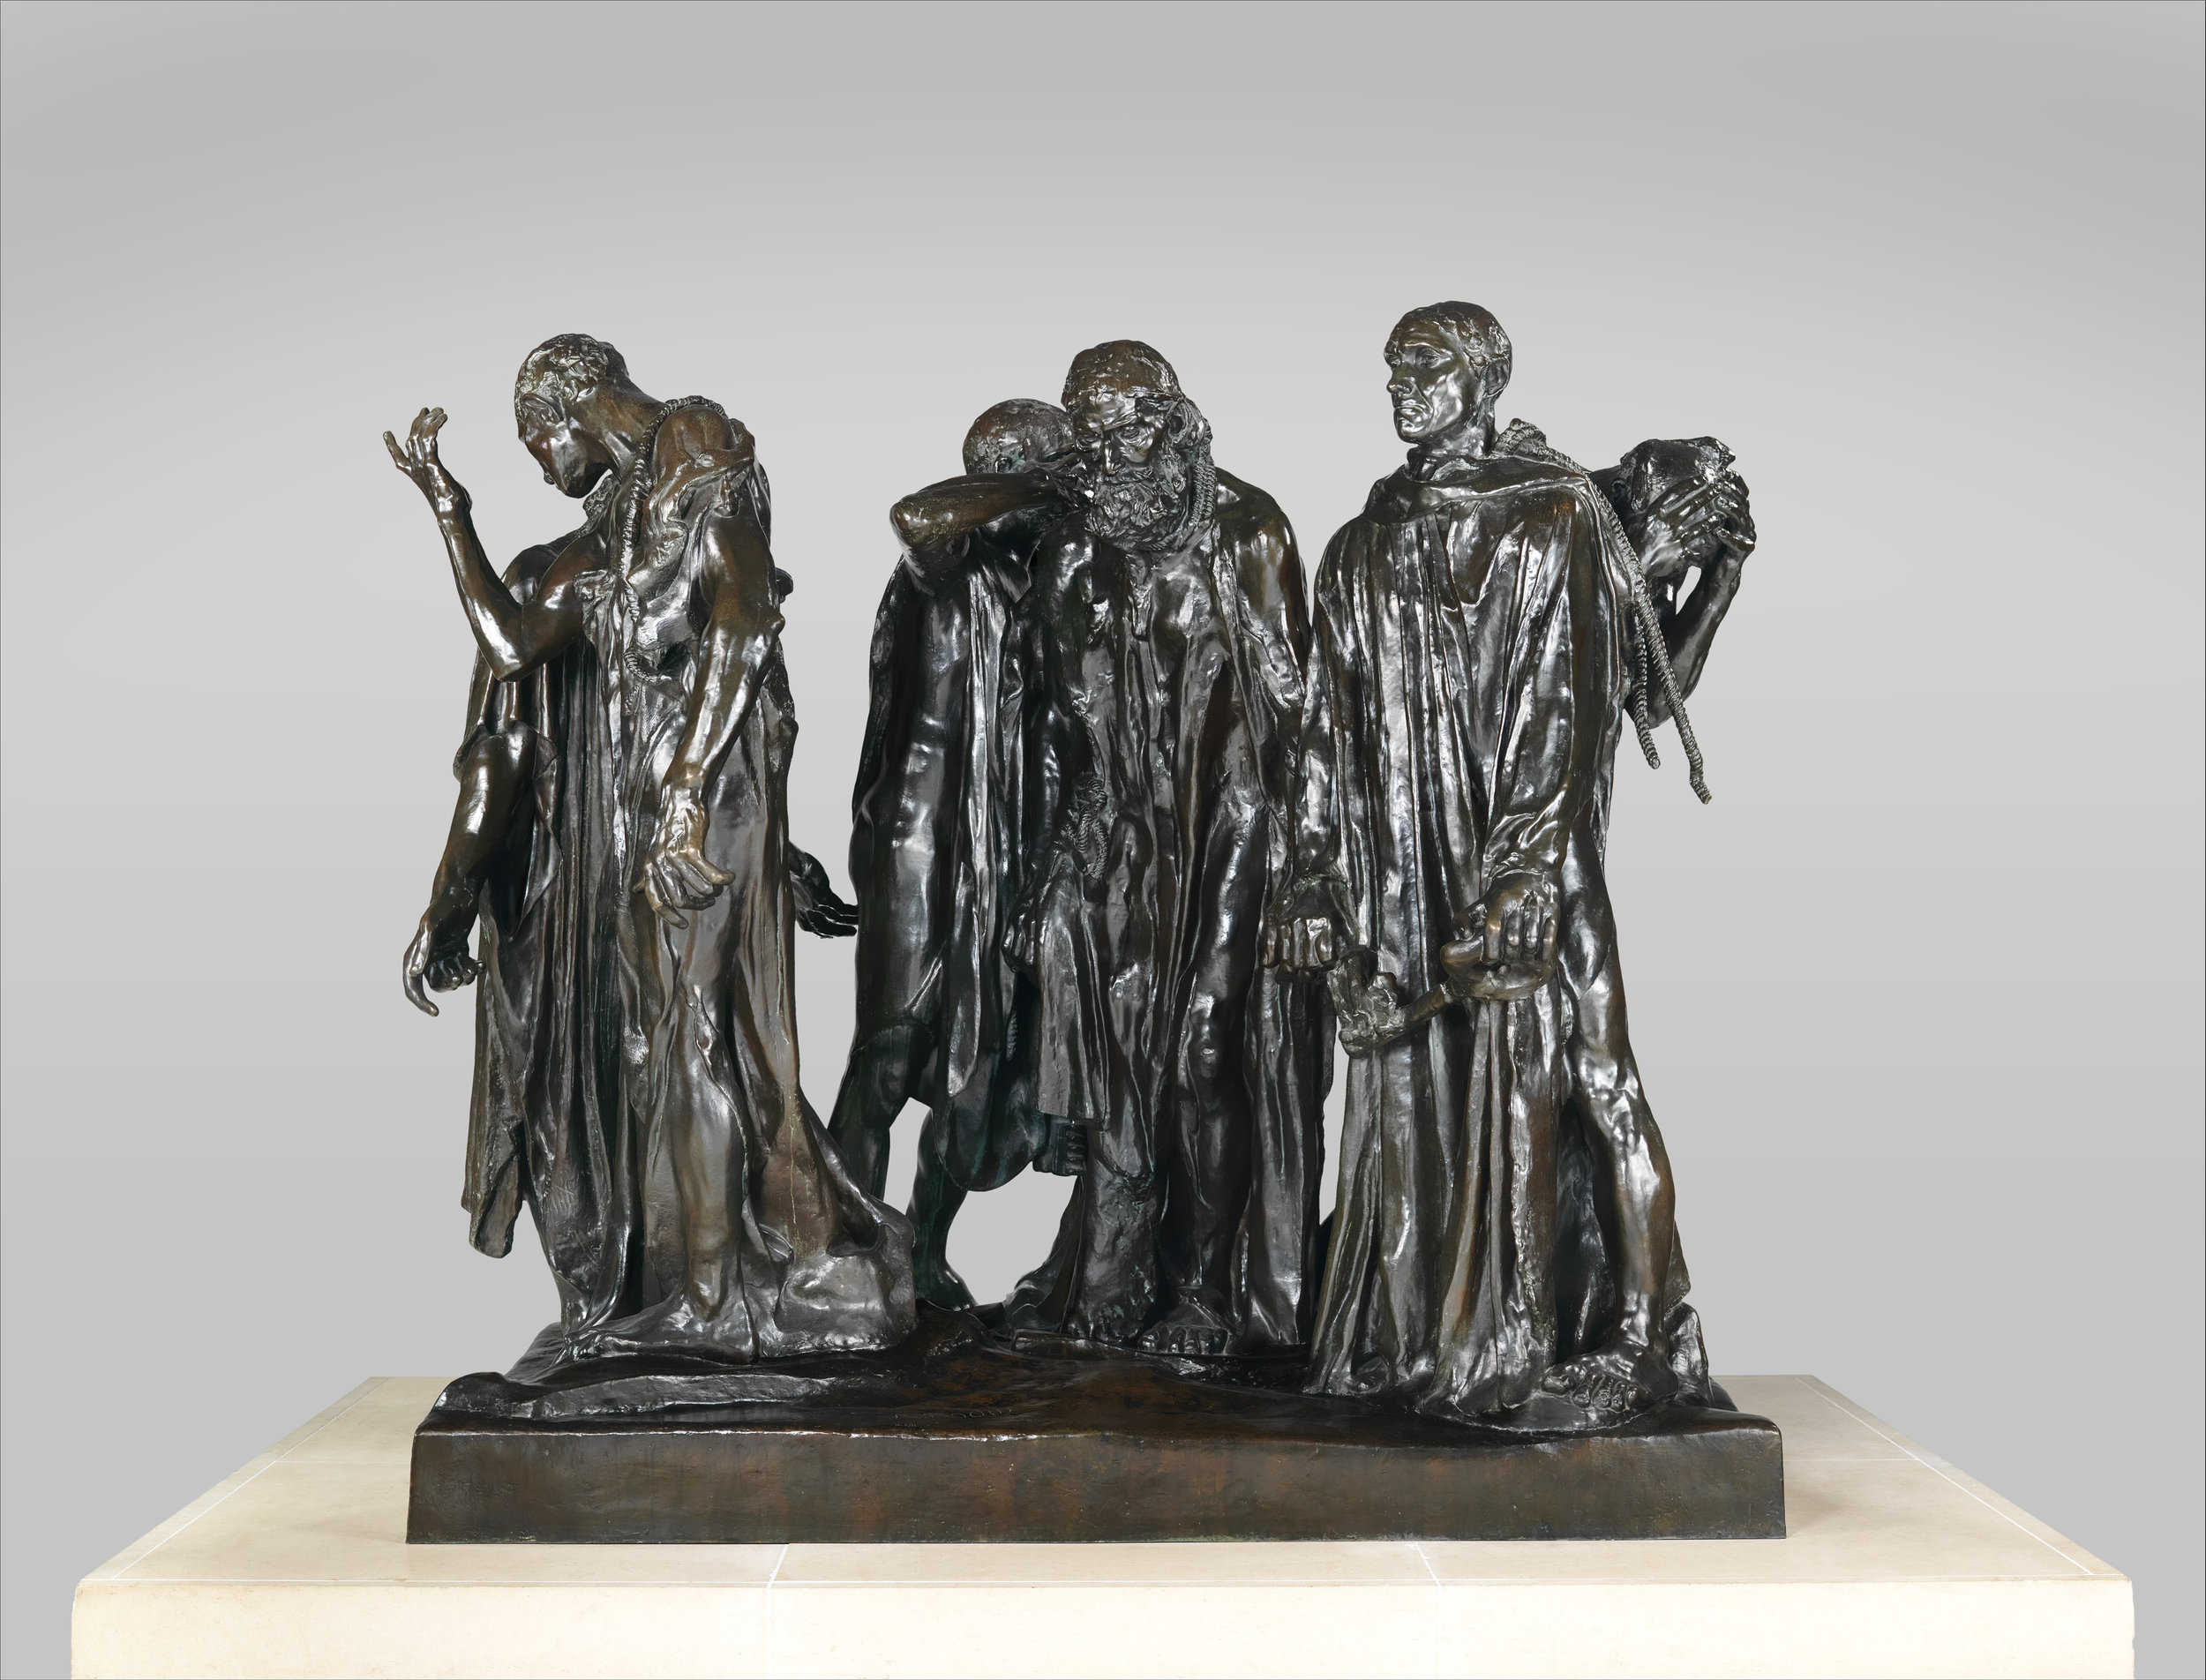 Auguste Rodin (Coubertin Foundry),  The Burghers of Calais,  modeled 1884-95, cast 1985, bronze, 82 1/2 × 94 × 95 in. (209.6 × 238.8 × 241.3 cm), The Metropolitan Museum of Art, Gift of Iris and B. Gerald Cantor, 1989, 1989.407.